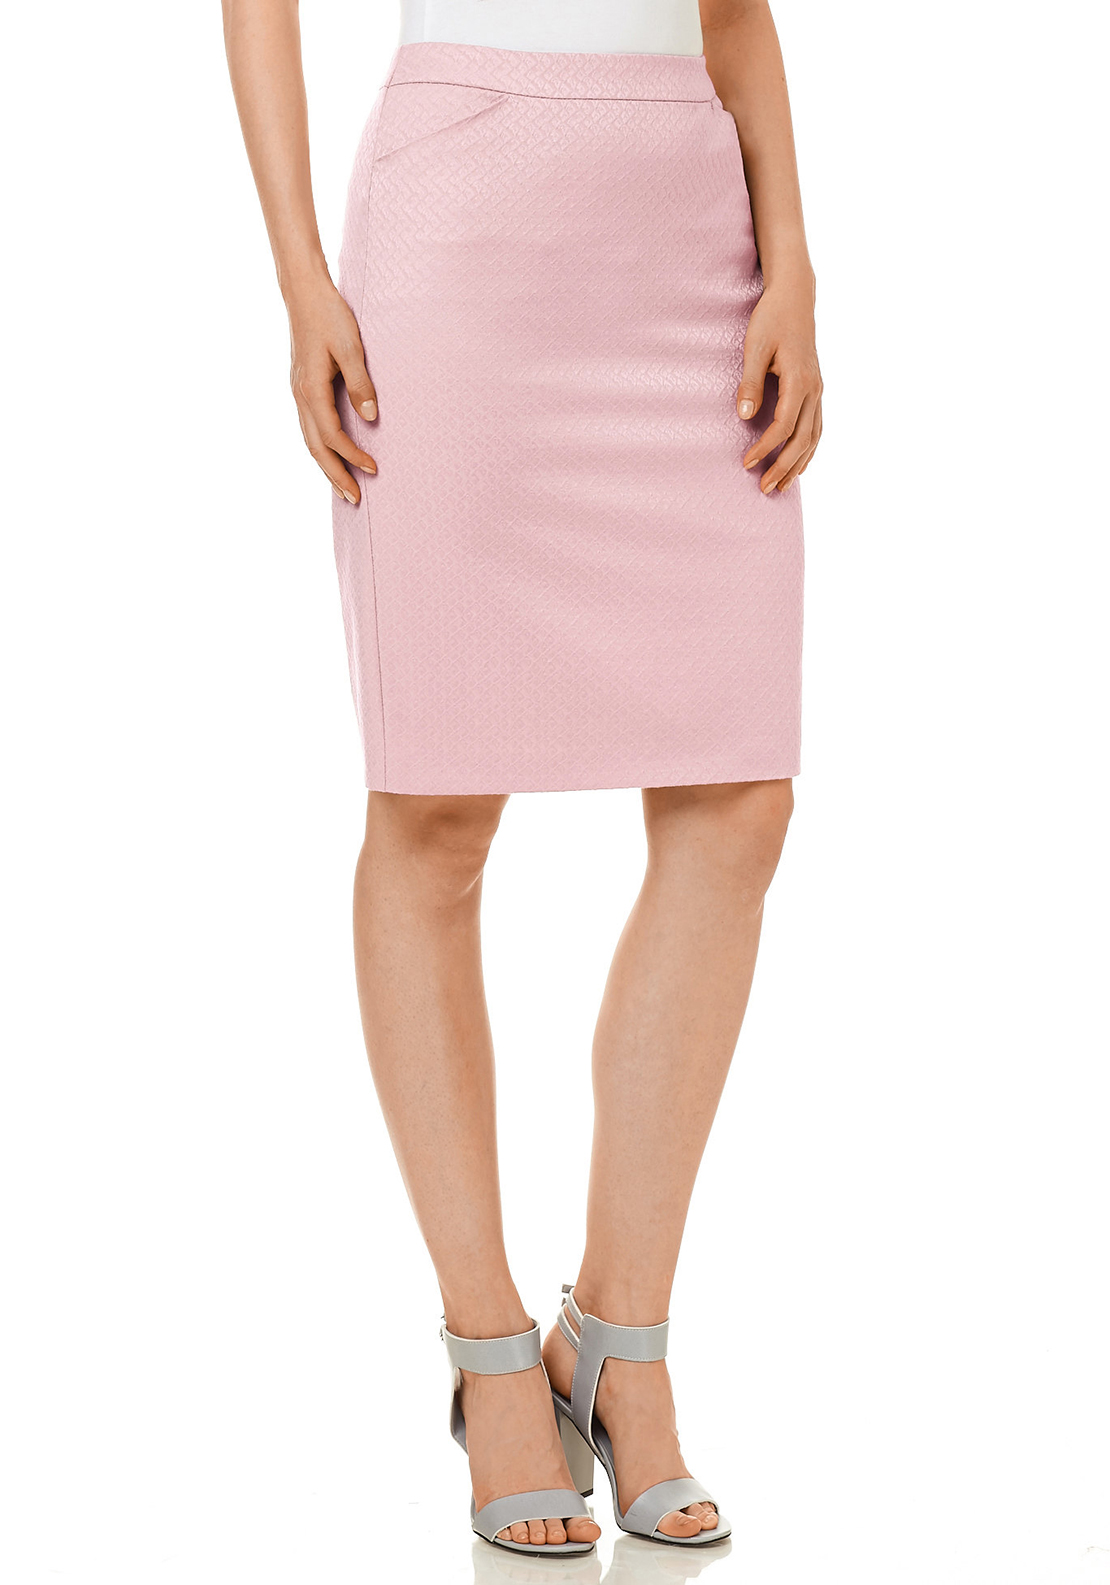 Gerry Weber Embossed Diamond Print Pencil Skirt, Pink